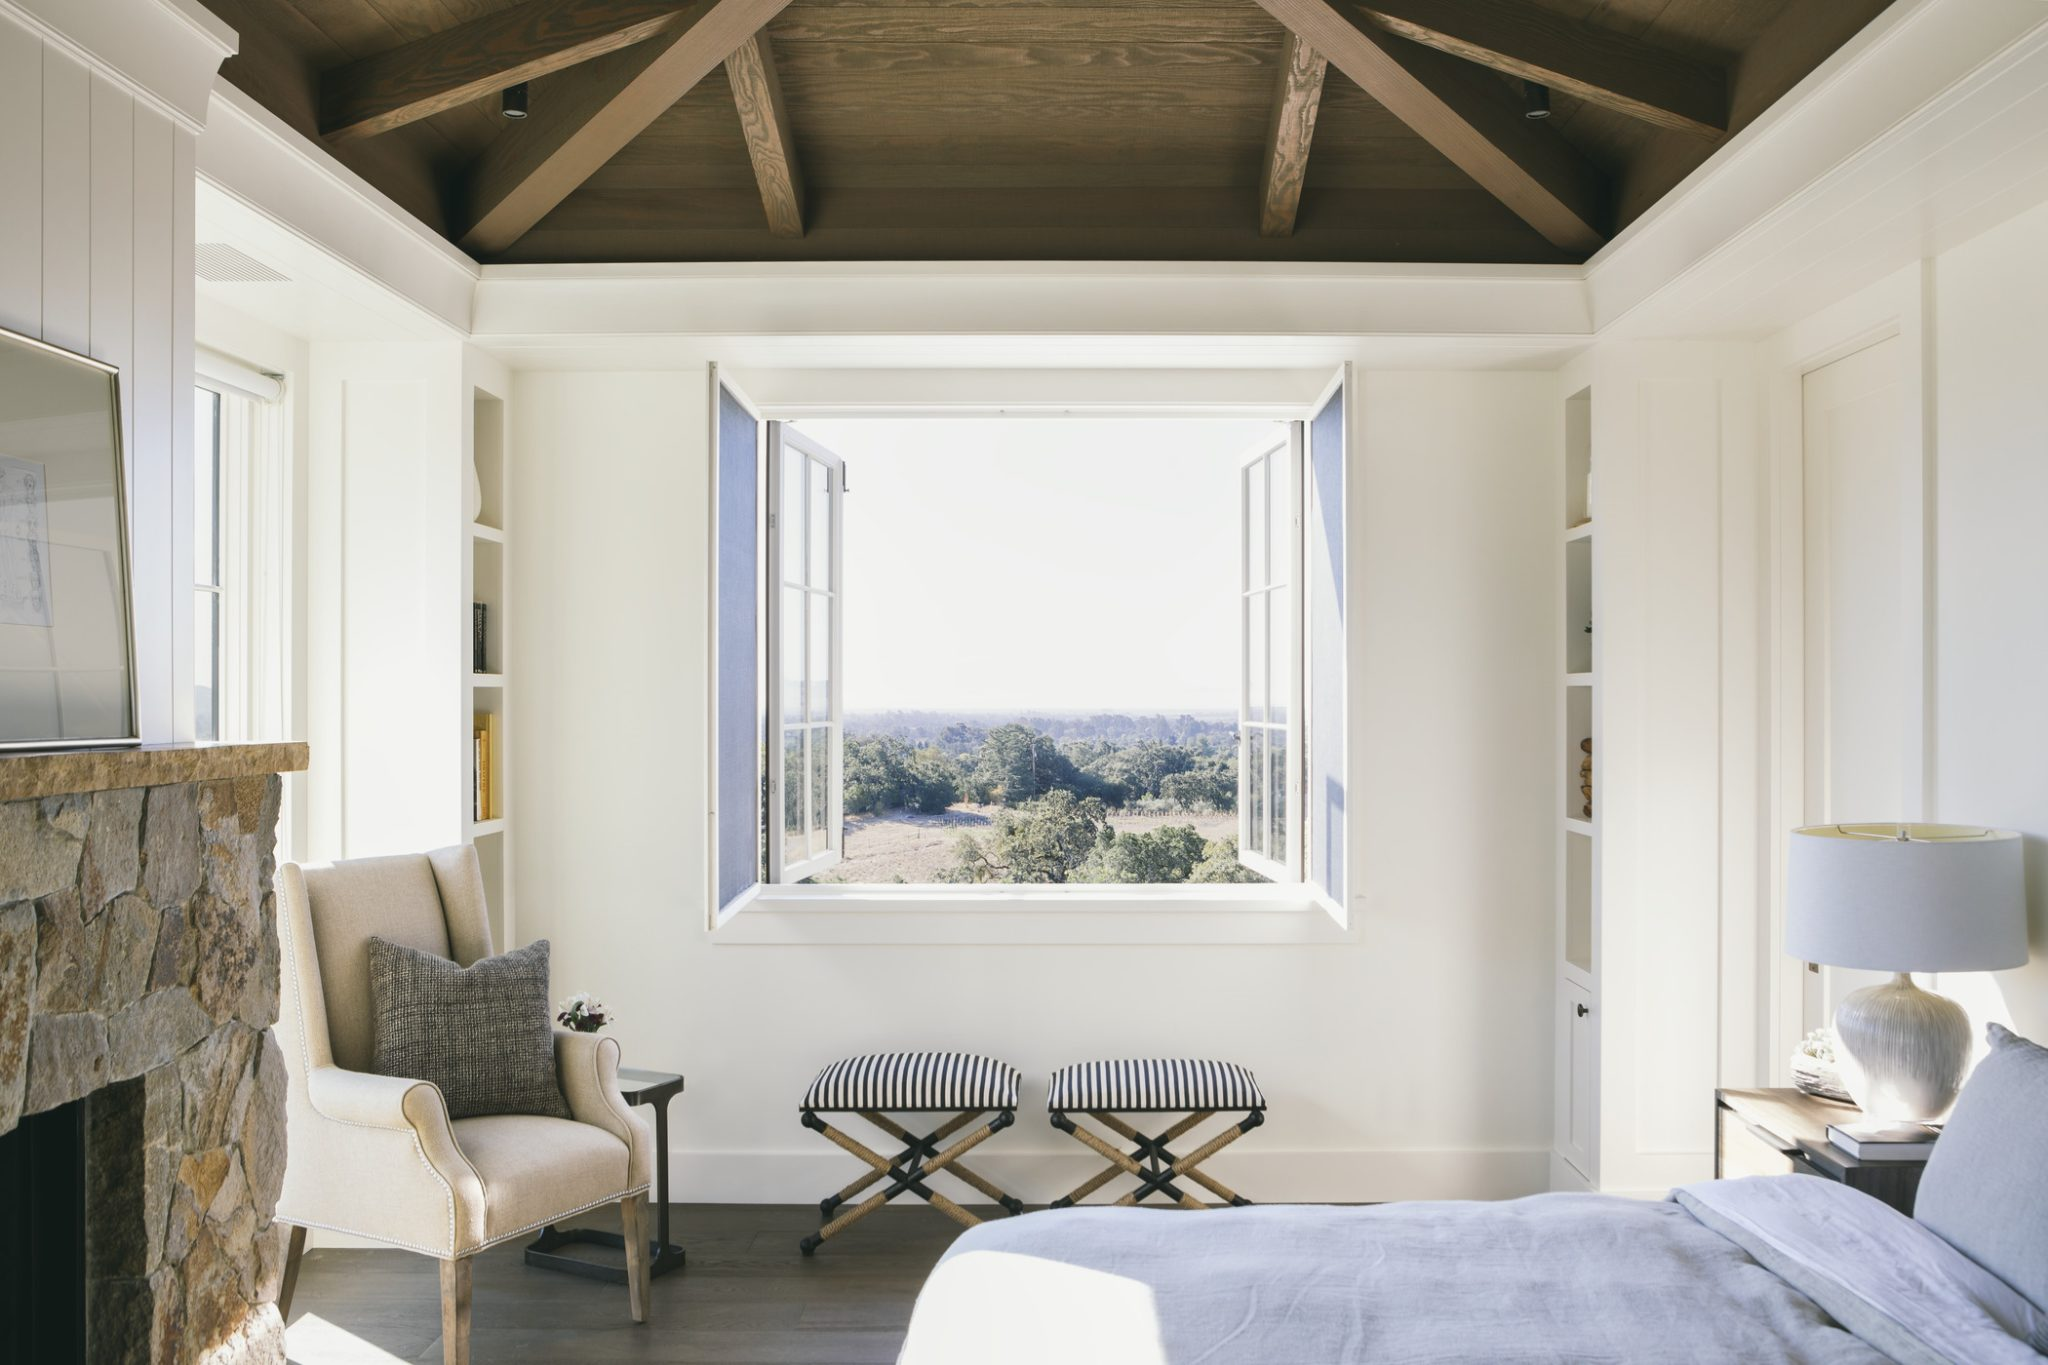 A mix of natural materials creates a cozy, intimate aesthetic in thisbedroom.